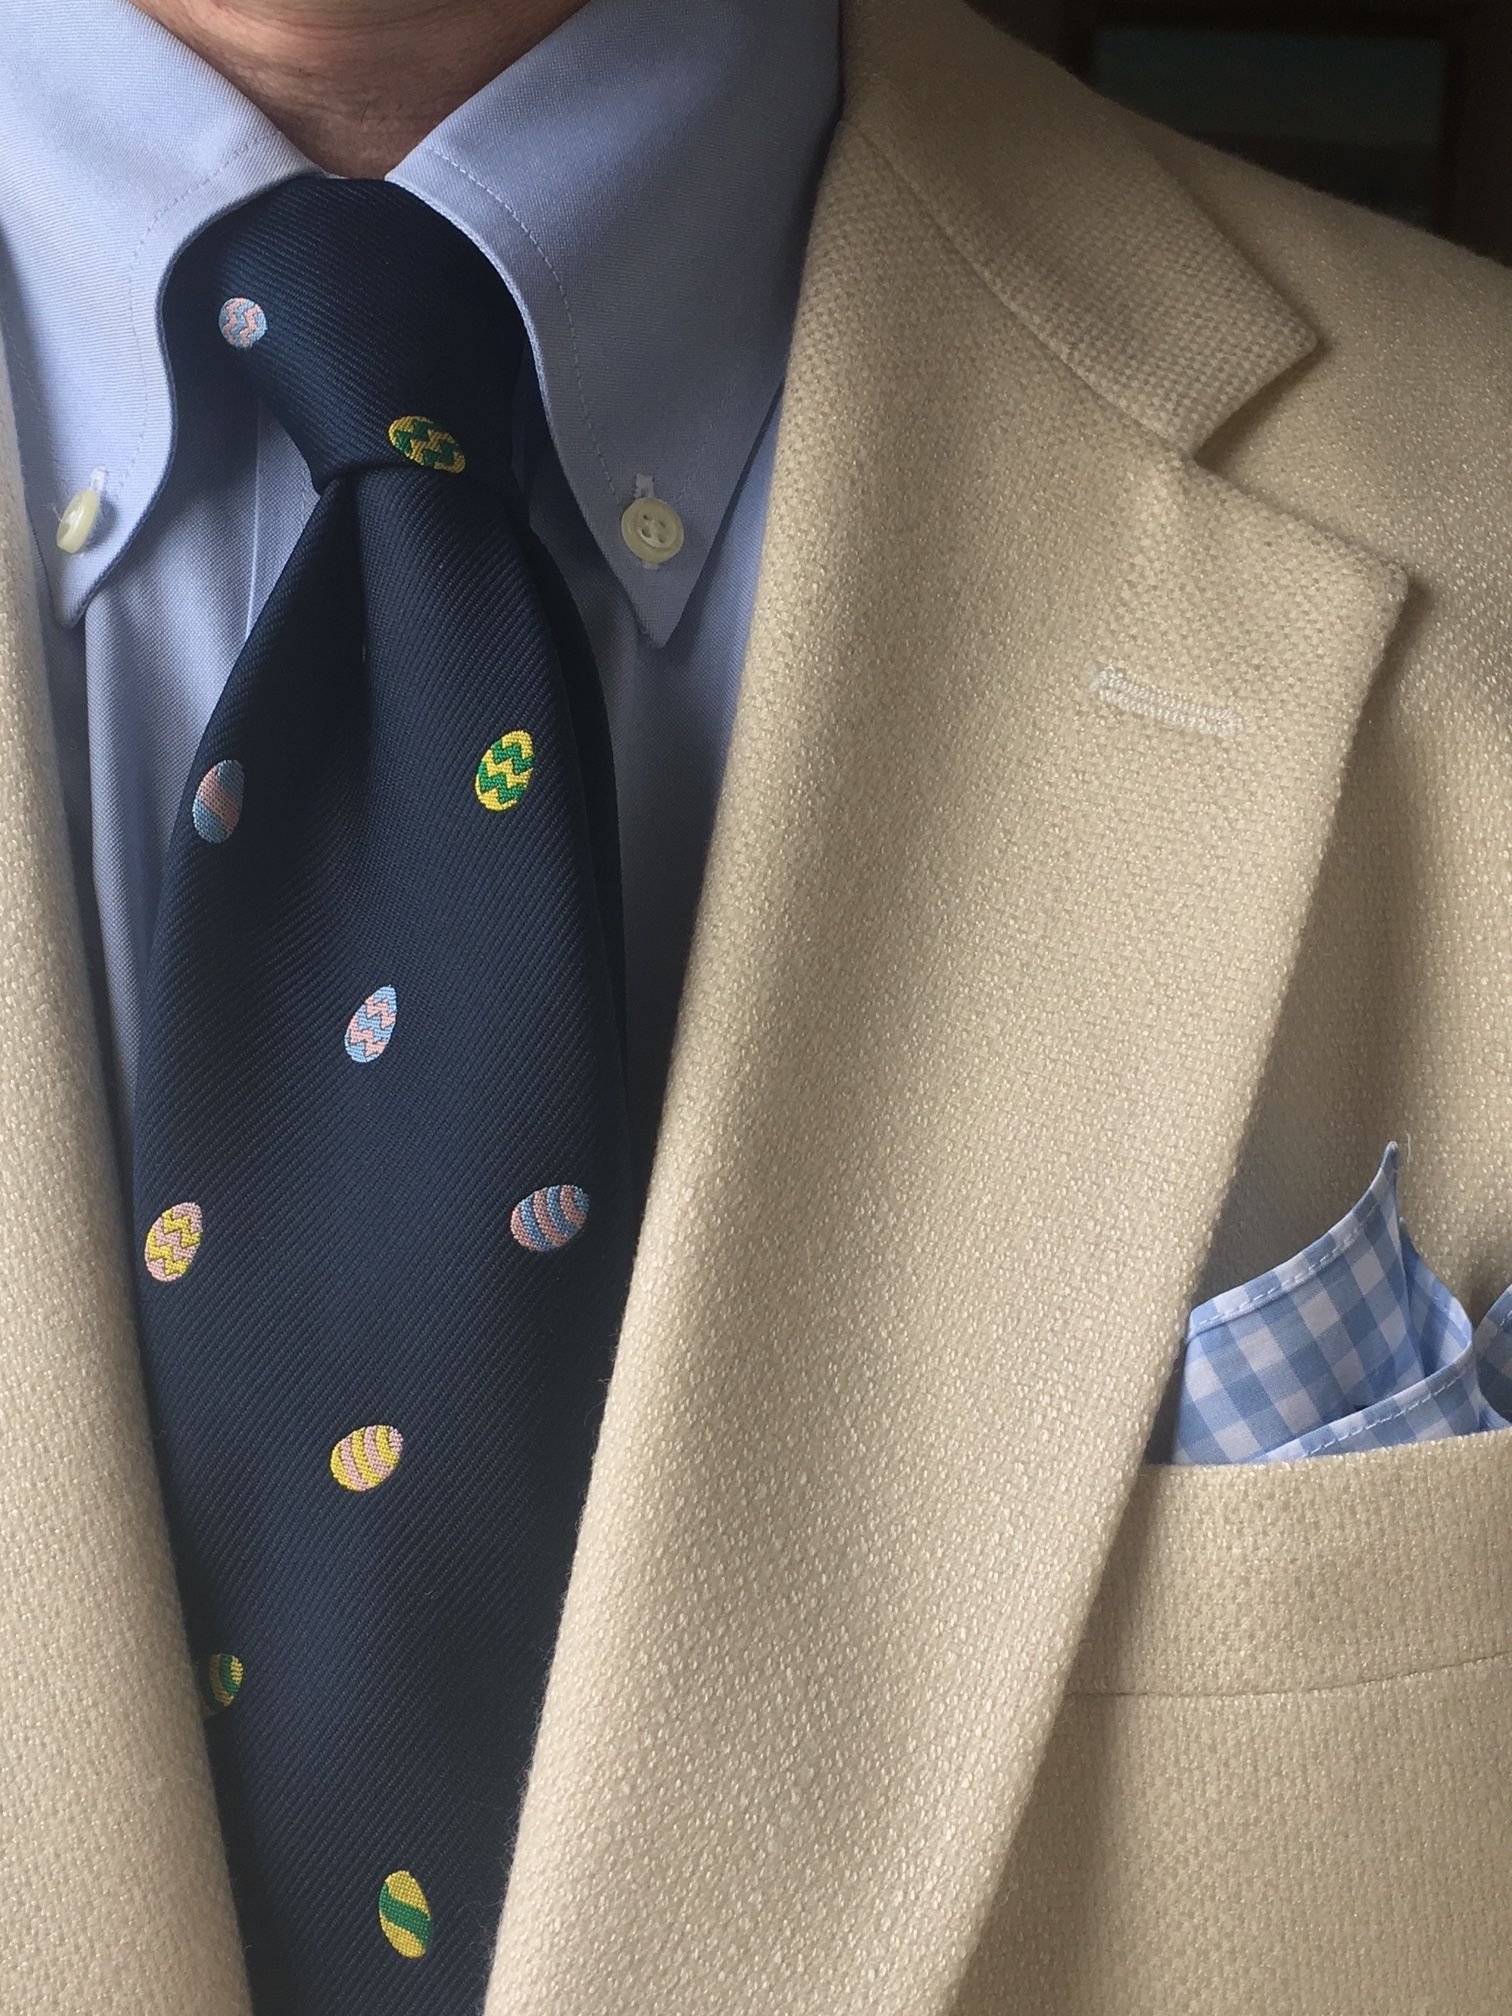 7fdbb7cd54a Brooks Brothers pinpoint Oxford shirt, vintage silk/wool-blend 3/2 jacket,  cotton gingham pocket square; Chippmunk Creations Easter egg emblematic tie.